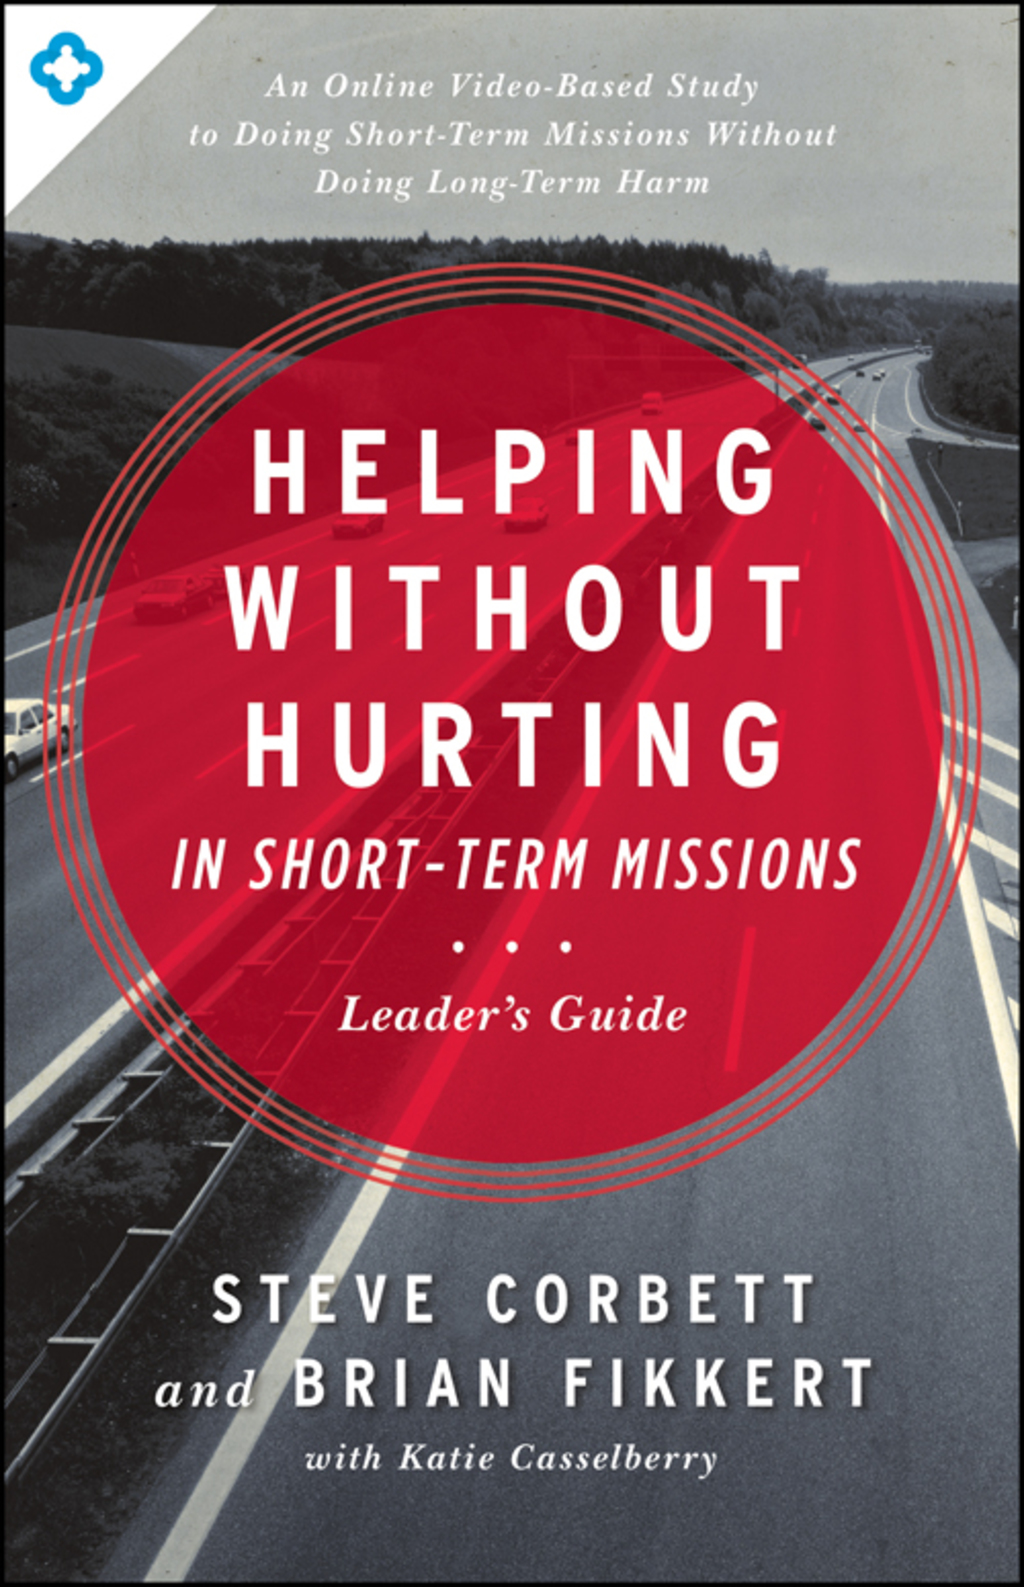 Helping Without Hurting In Short-term Missions: Leader's Guide (ebook)